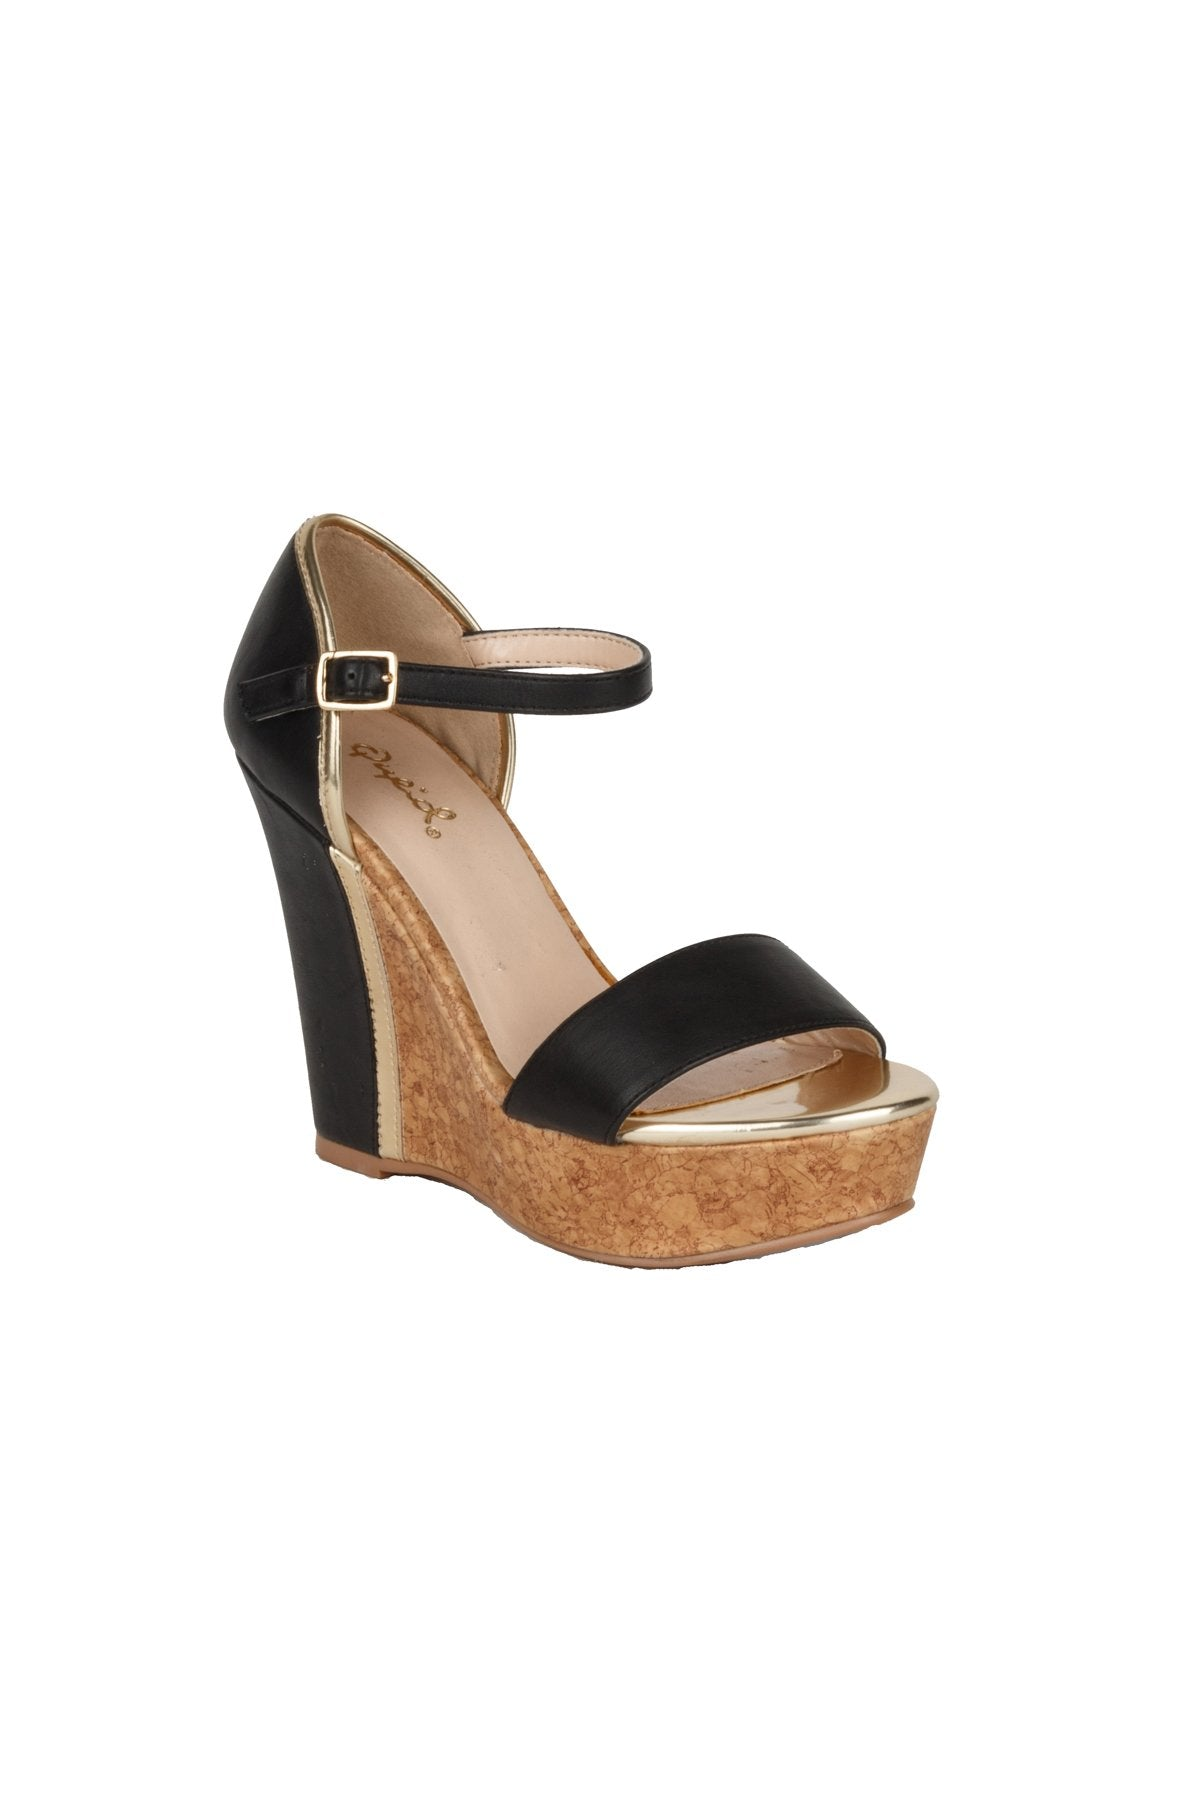 Ankle Strap High Heel Wedge Sandal